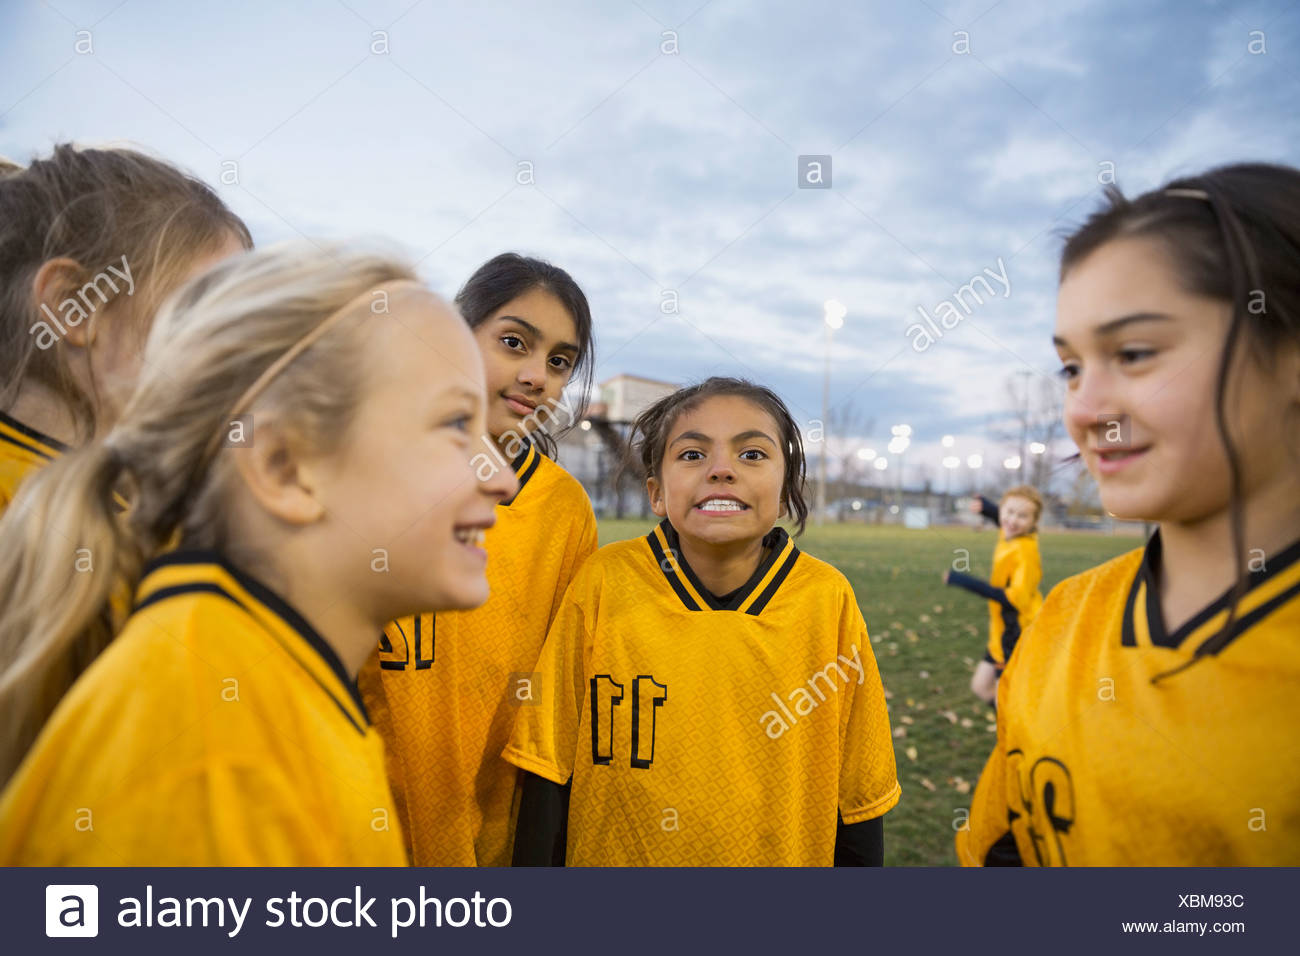 Soccer team on field at dusk Stock Photo